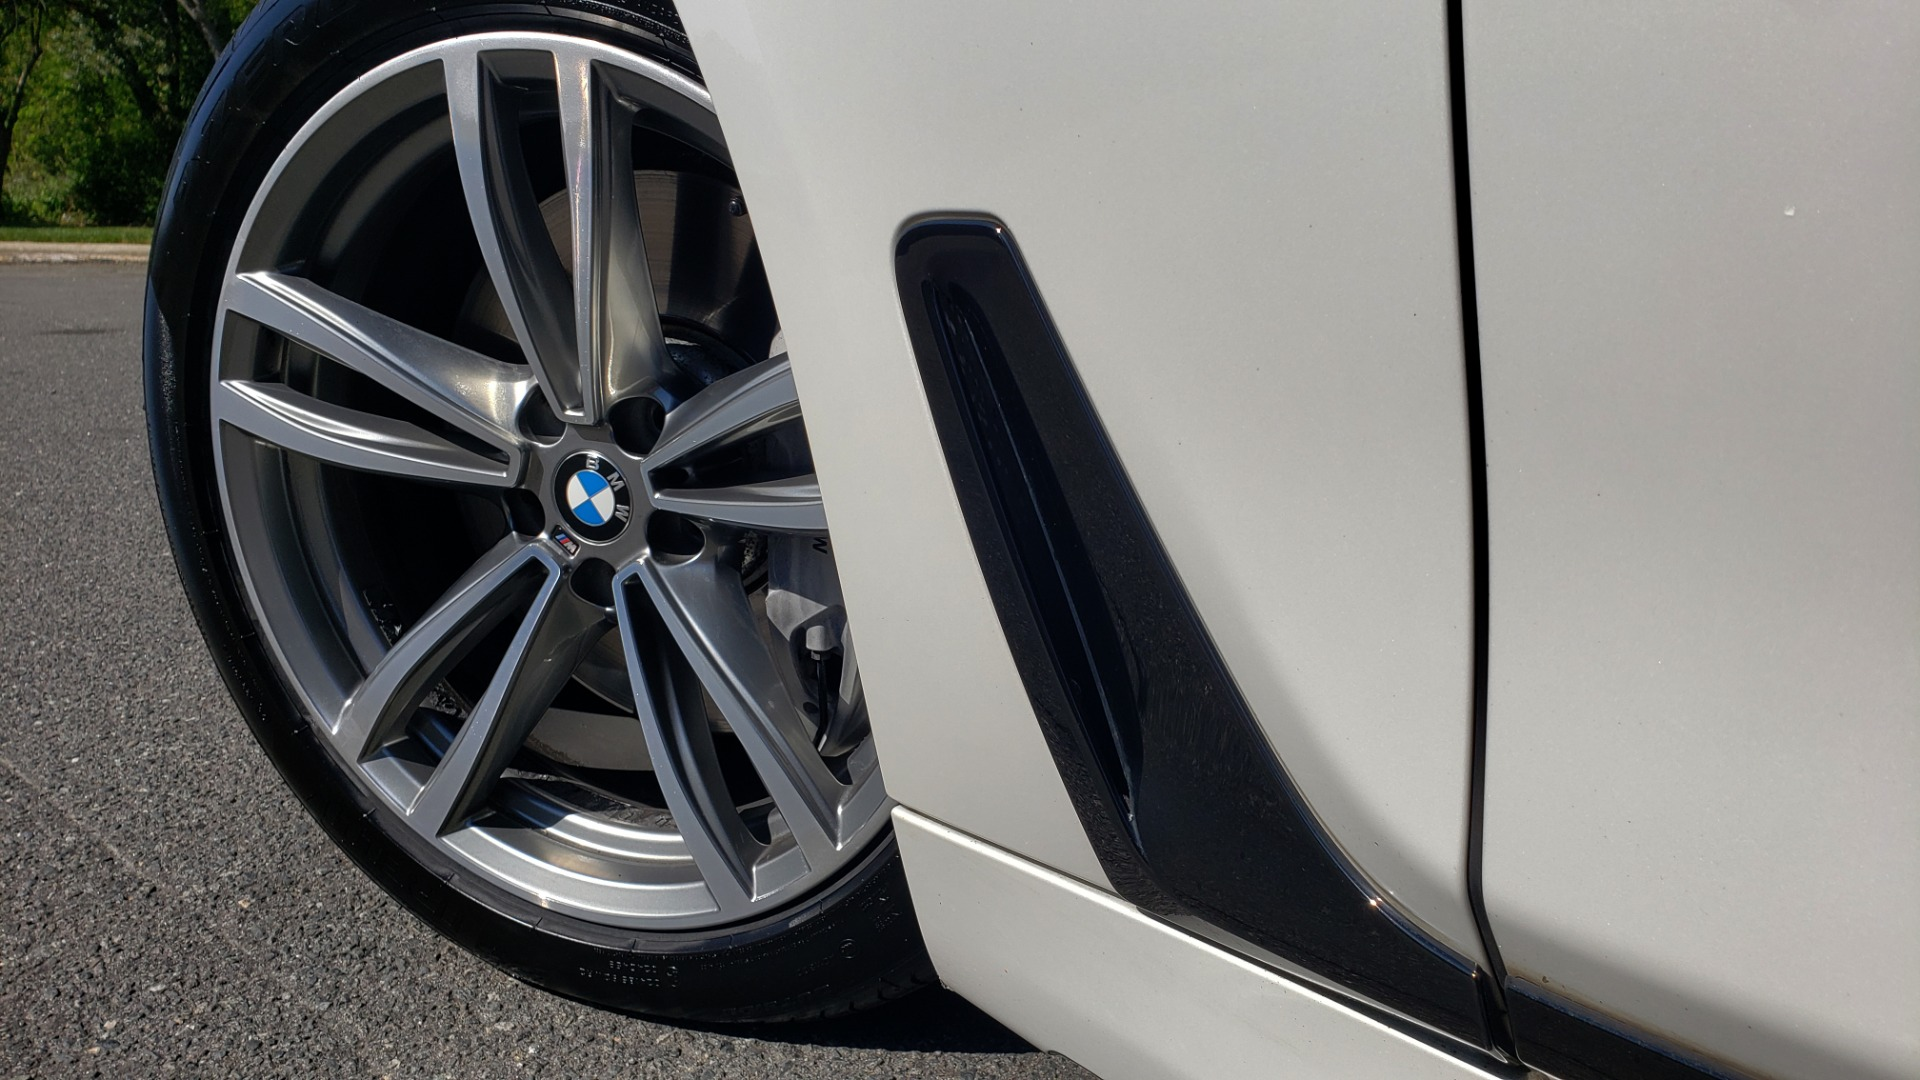 Used 2017 BMW 7 SERIES 750I XDRIVE / M-SPORT / EXEC PKG / DRVR ASST PLUS II / CLD WTHR for sale $48,495 at Formula Imports in Charlotte NC 28227 10